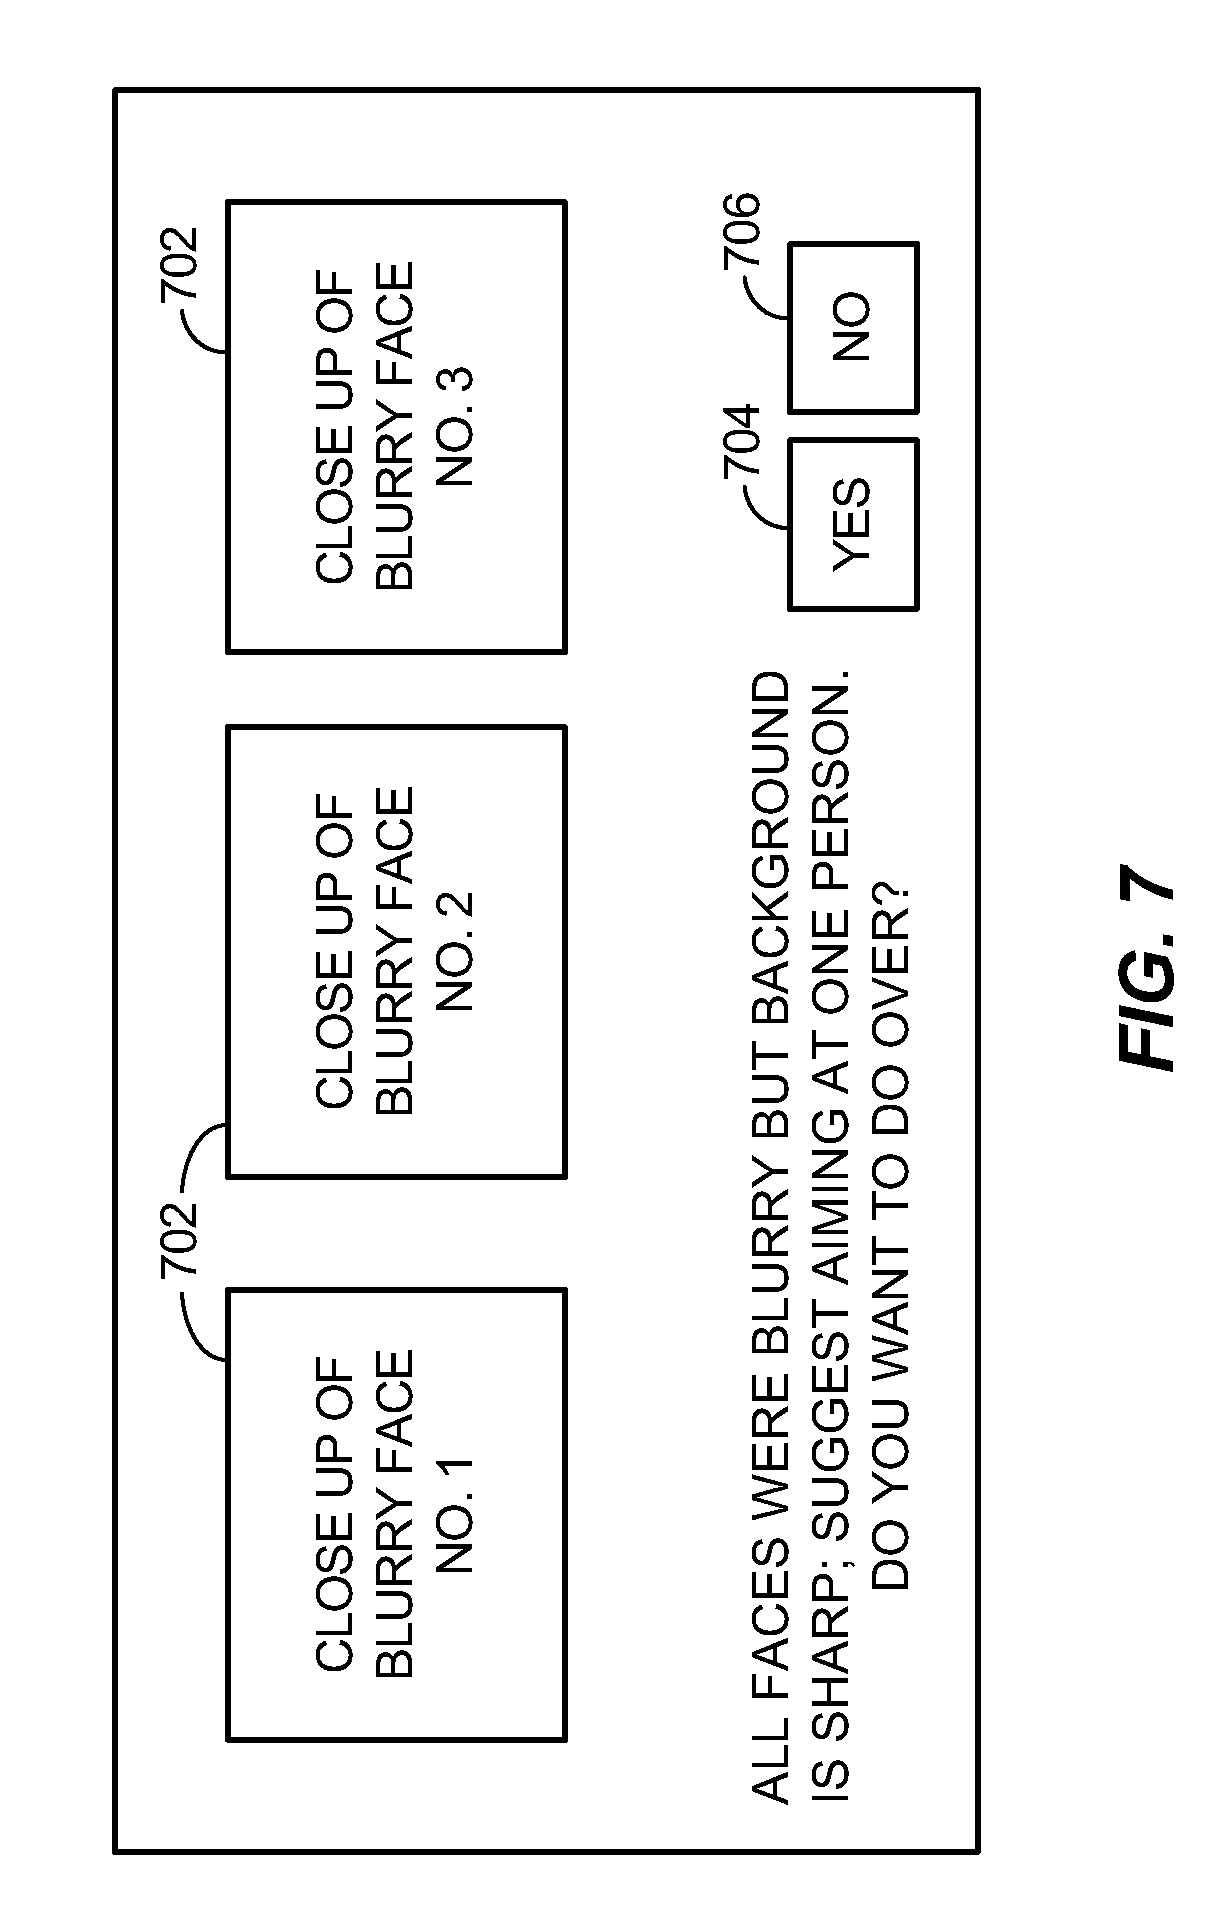 Patent US8498486 - Response to detection of blur in an image